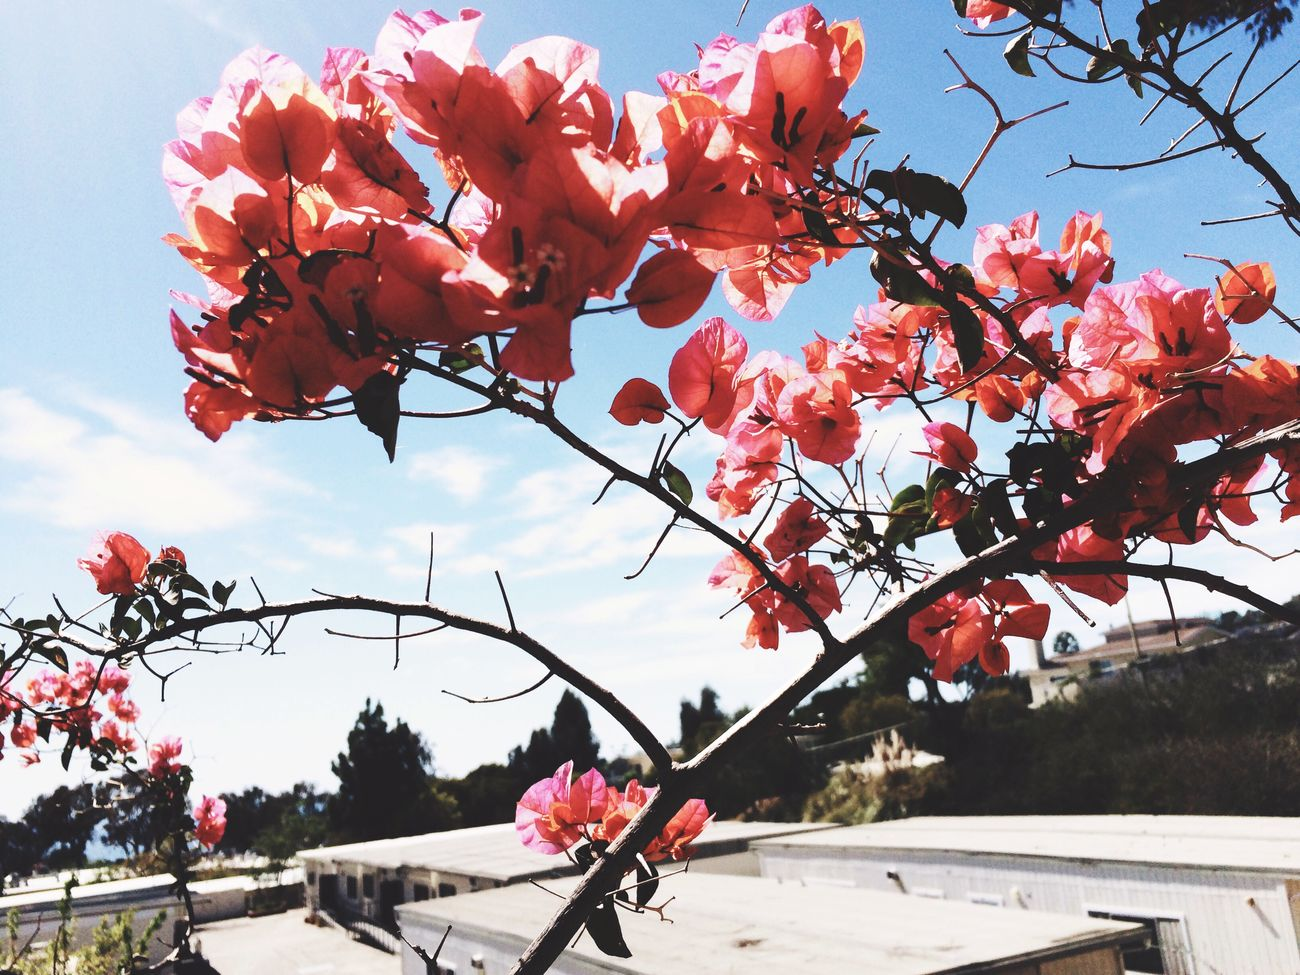 Bougainvillea Flowers California Dreaming California Perpetual Summer lovely shades of rusty pink. Perfect Day Open Edit Dark Pink By Motorola